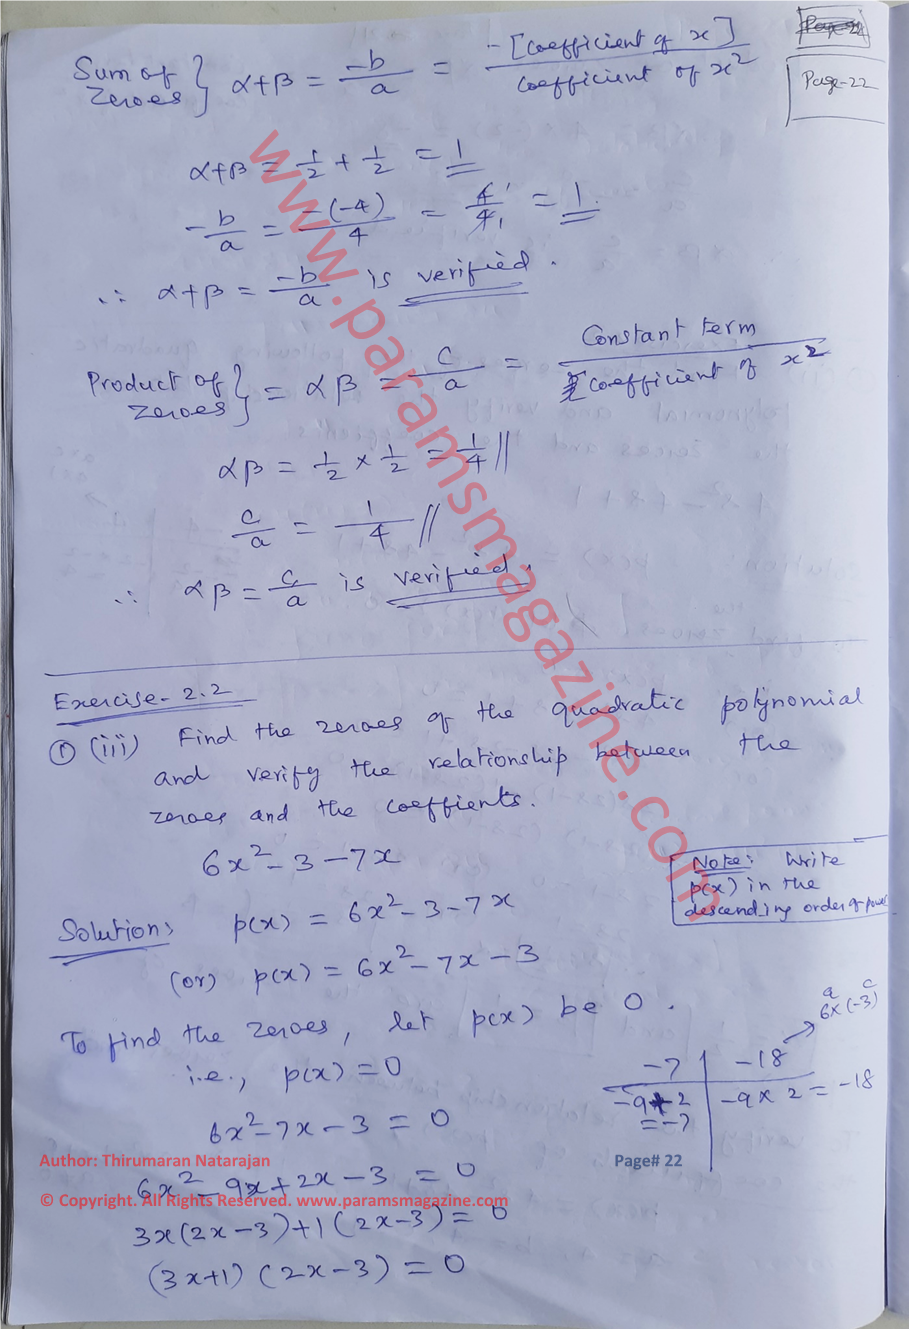 Class-10 - Polynomials - Notes - Page-22